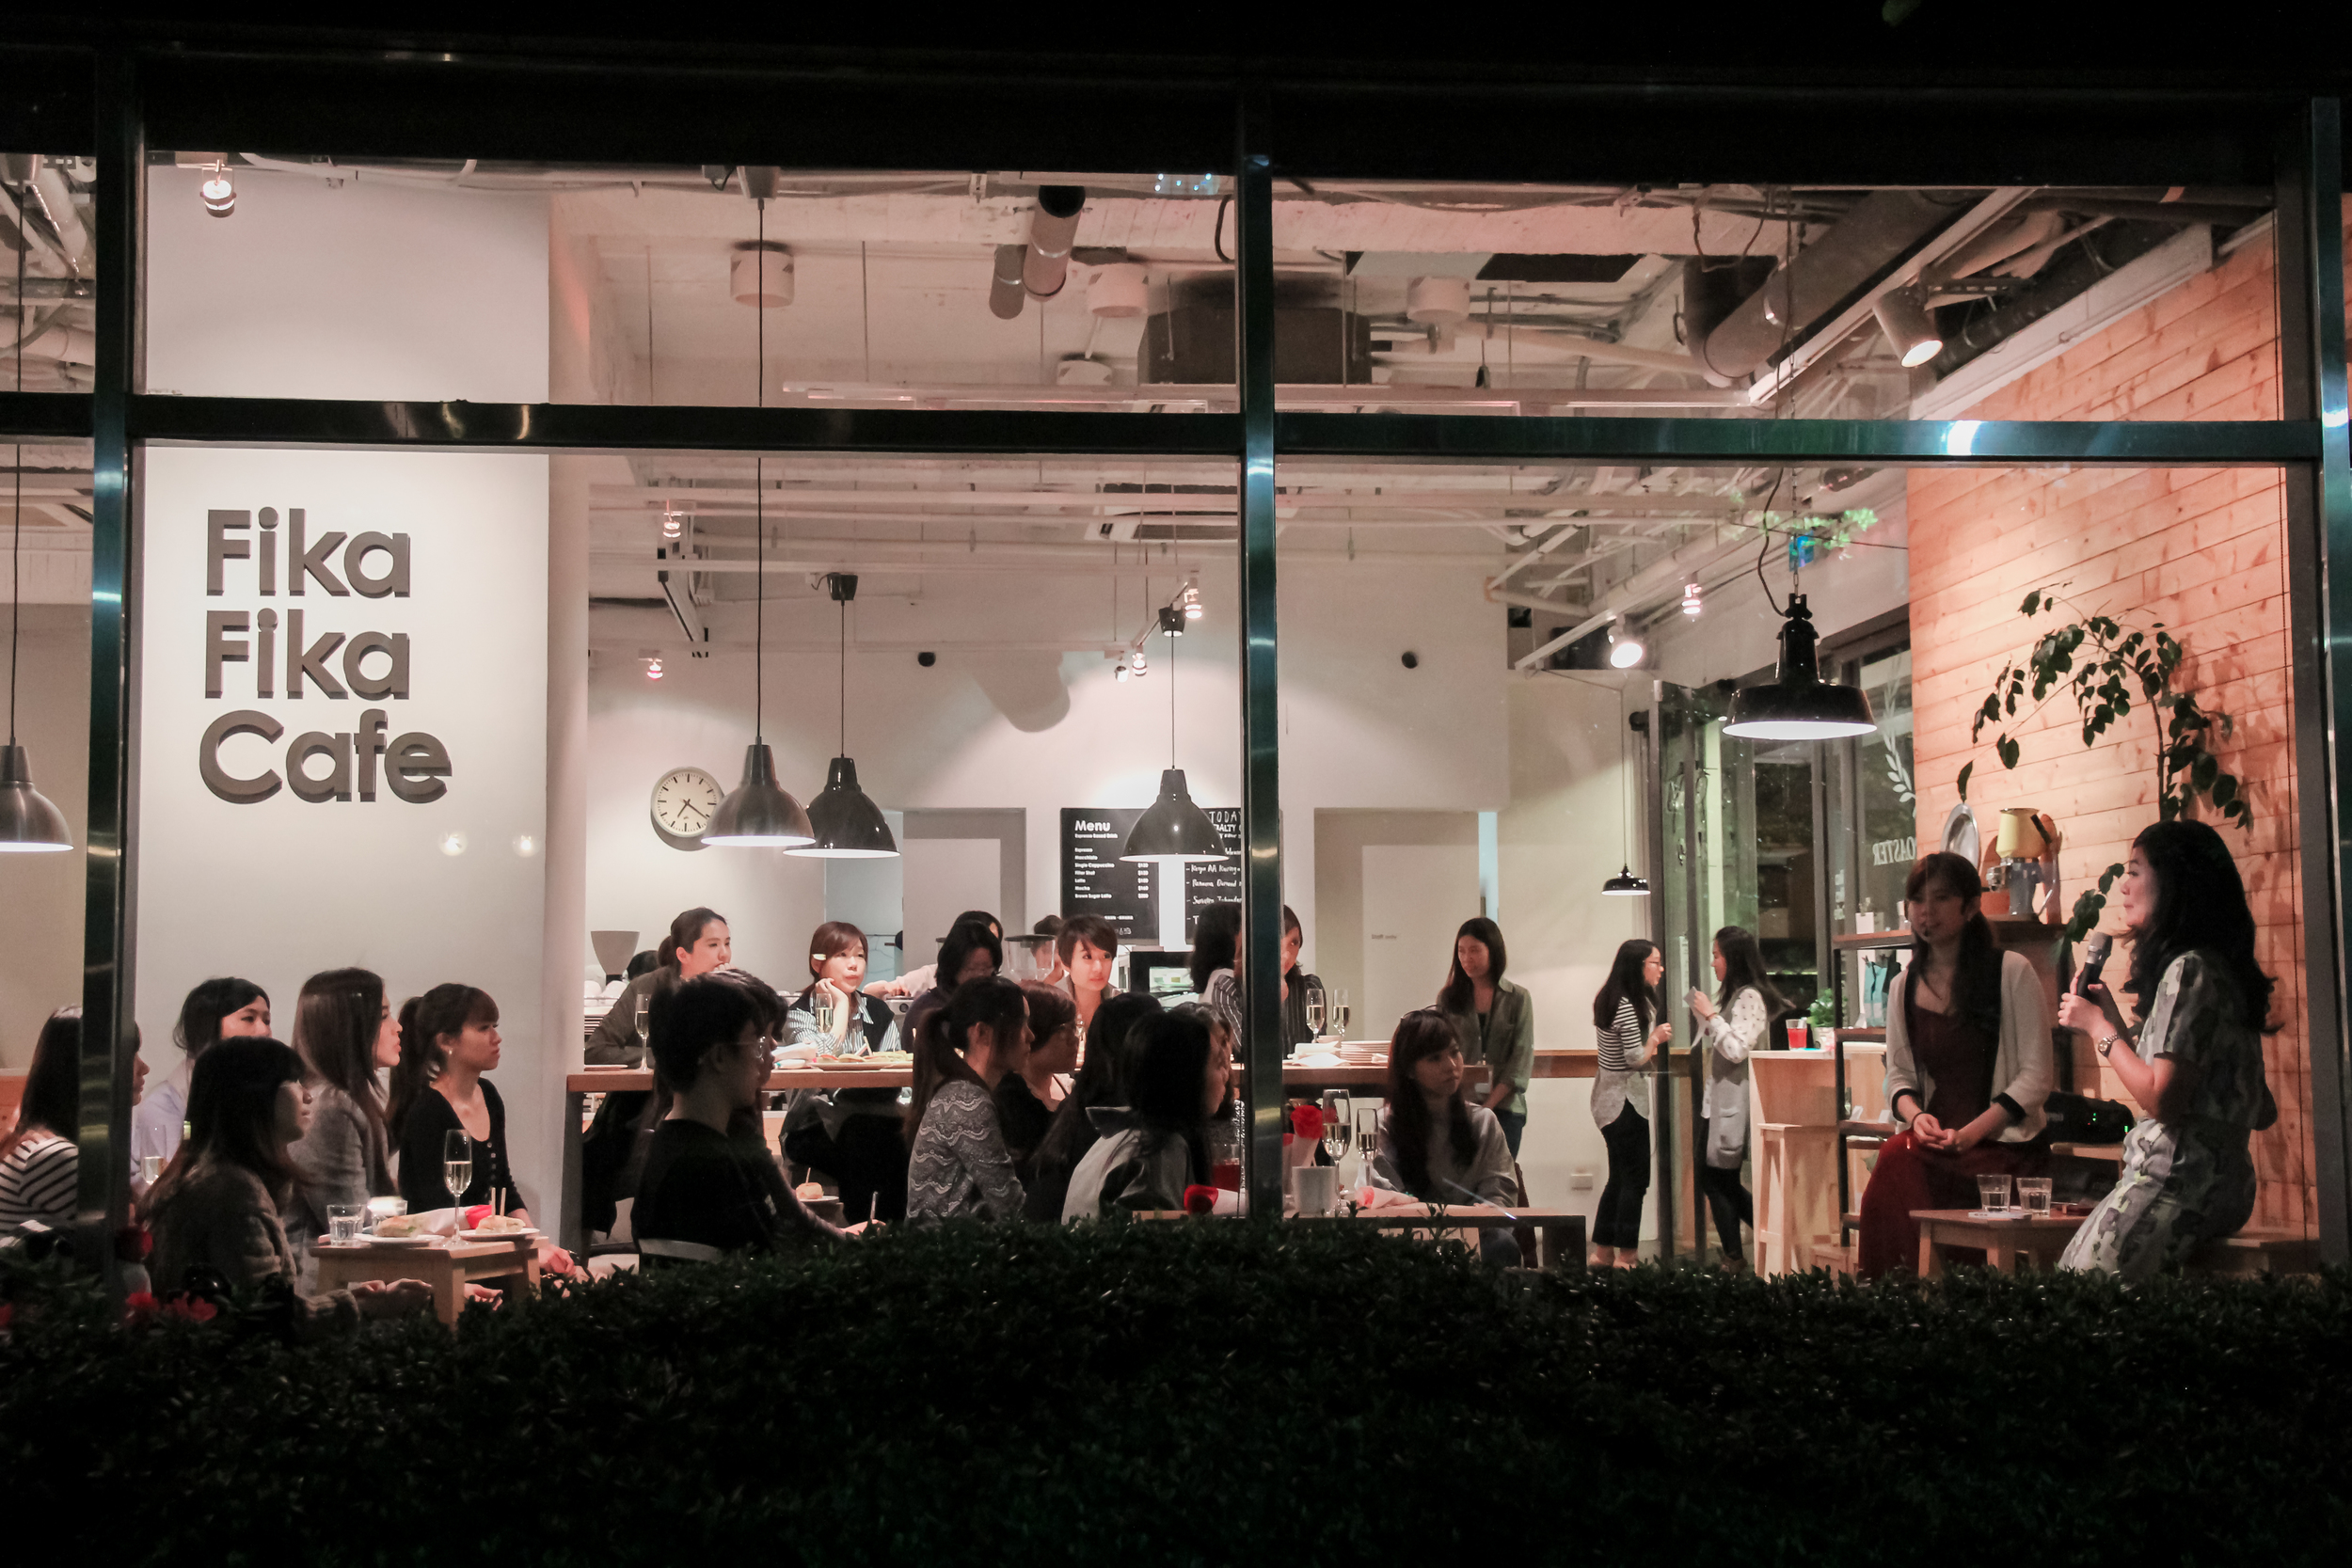 The session was held at Fika Fika Cafe , a cozy place with excellent coffee and food.